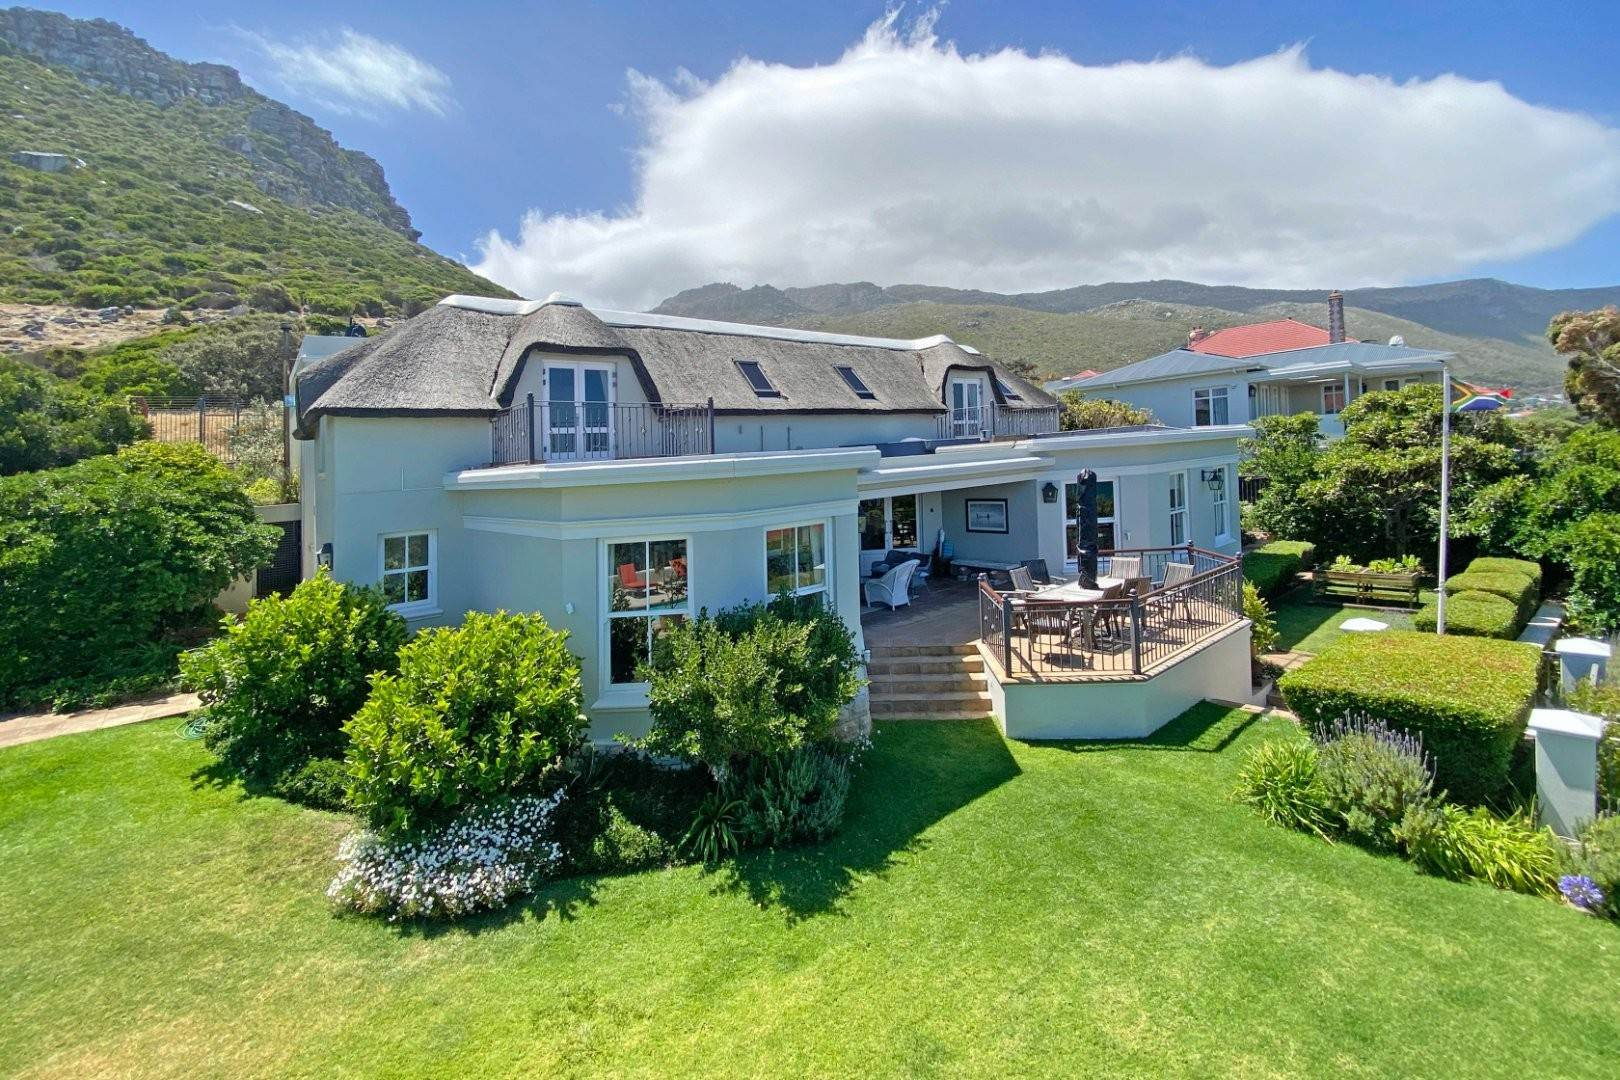 Single Family Home for Sale at ENCHANTING SEASIDE VILLA OFF MAIN ROAD Kalk Bay, Cape Town, Western Cape, South Africa